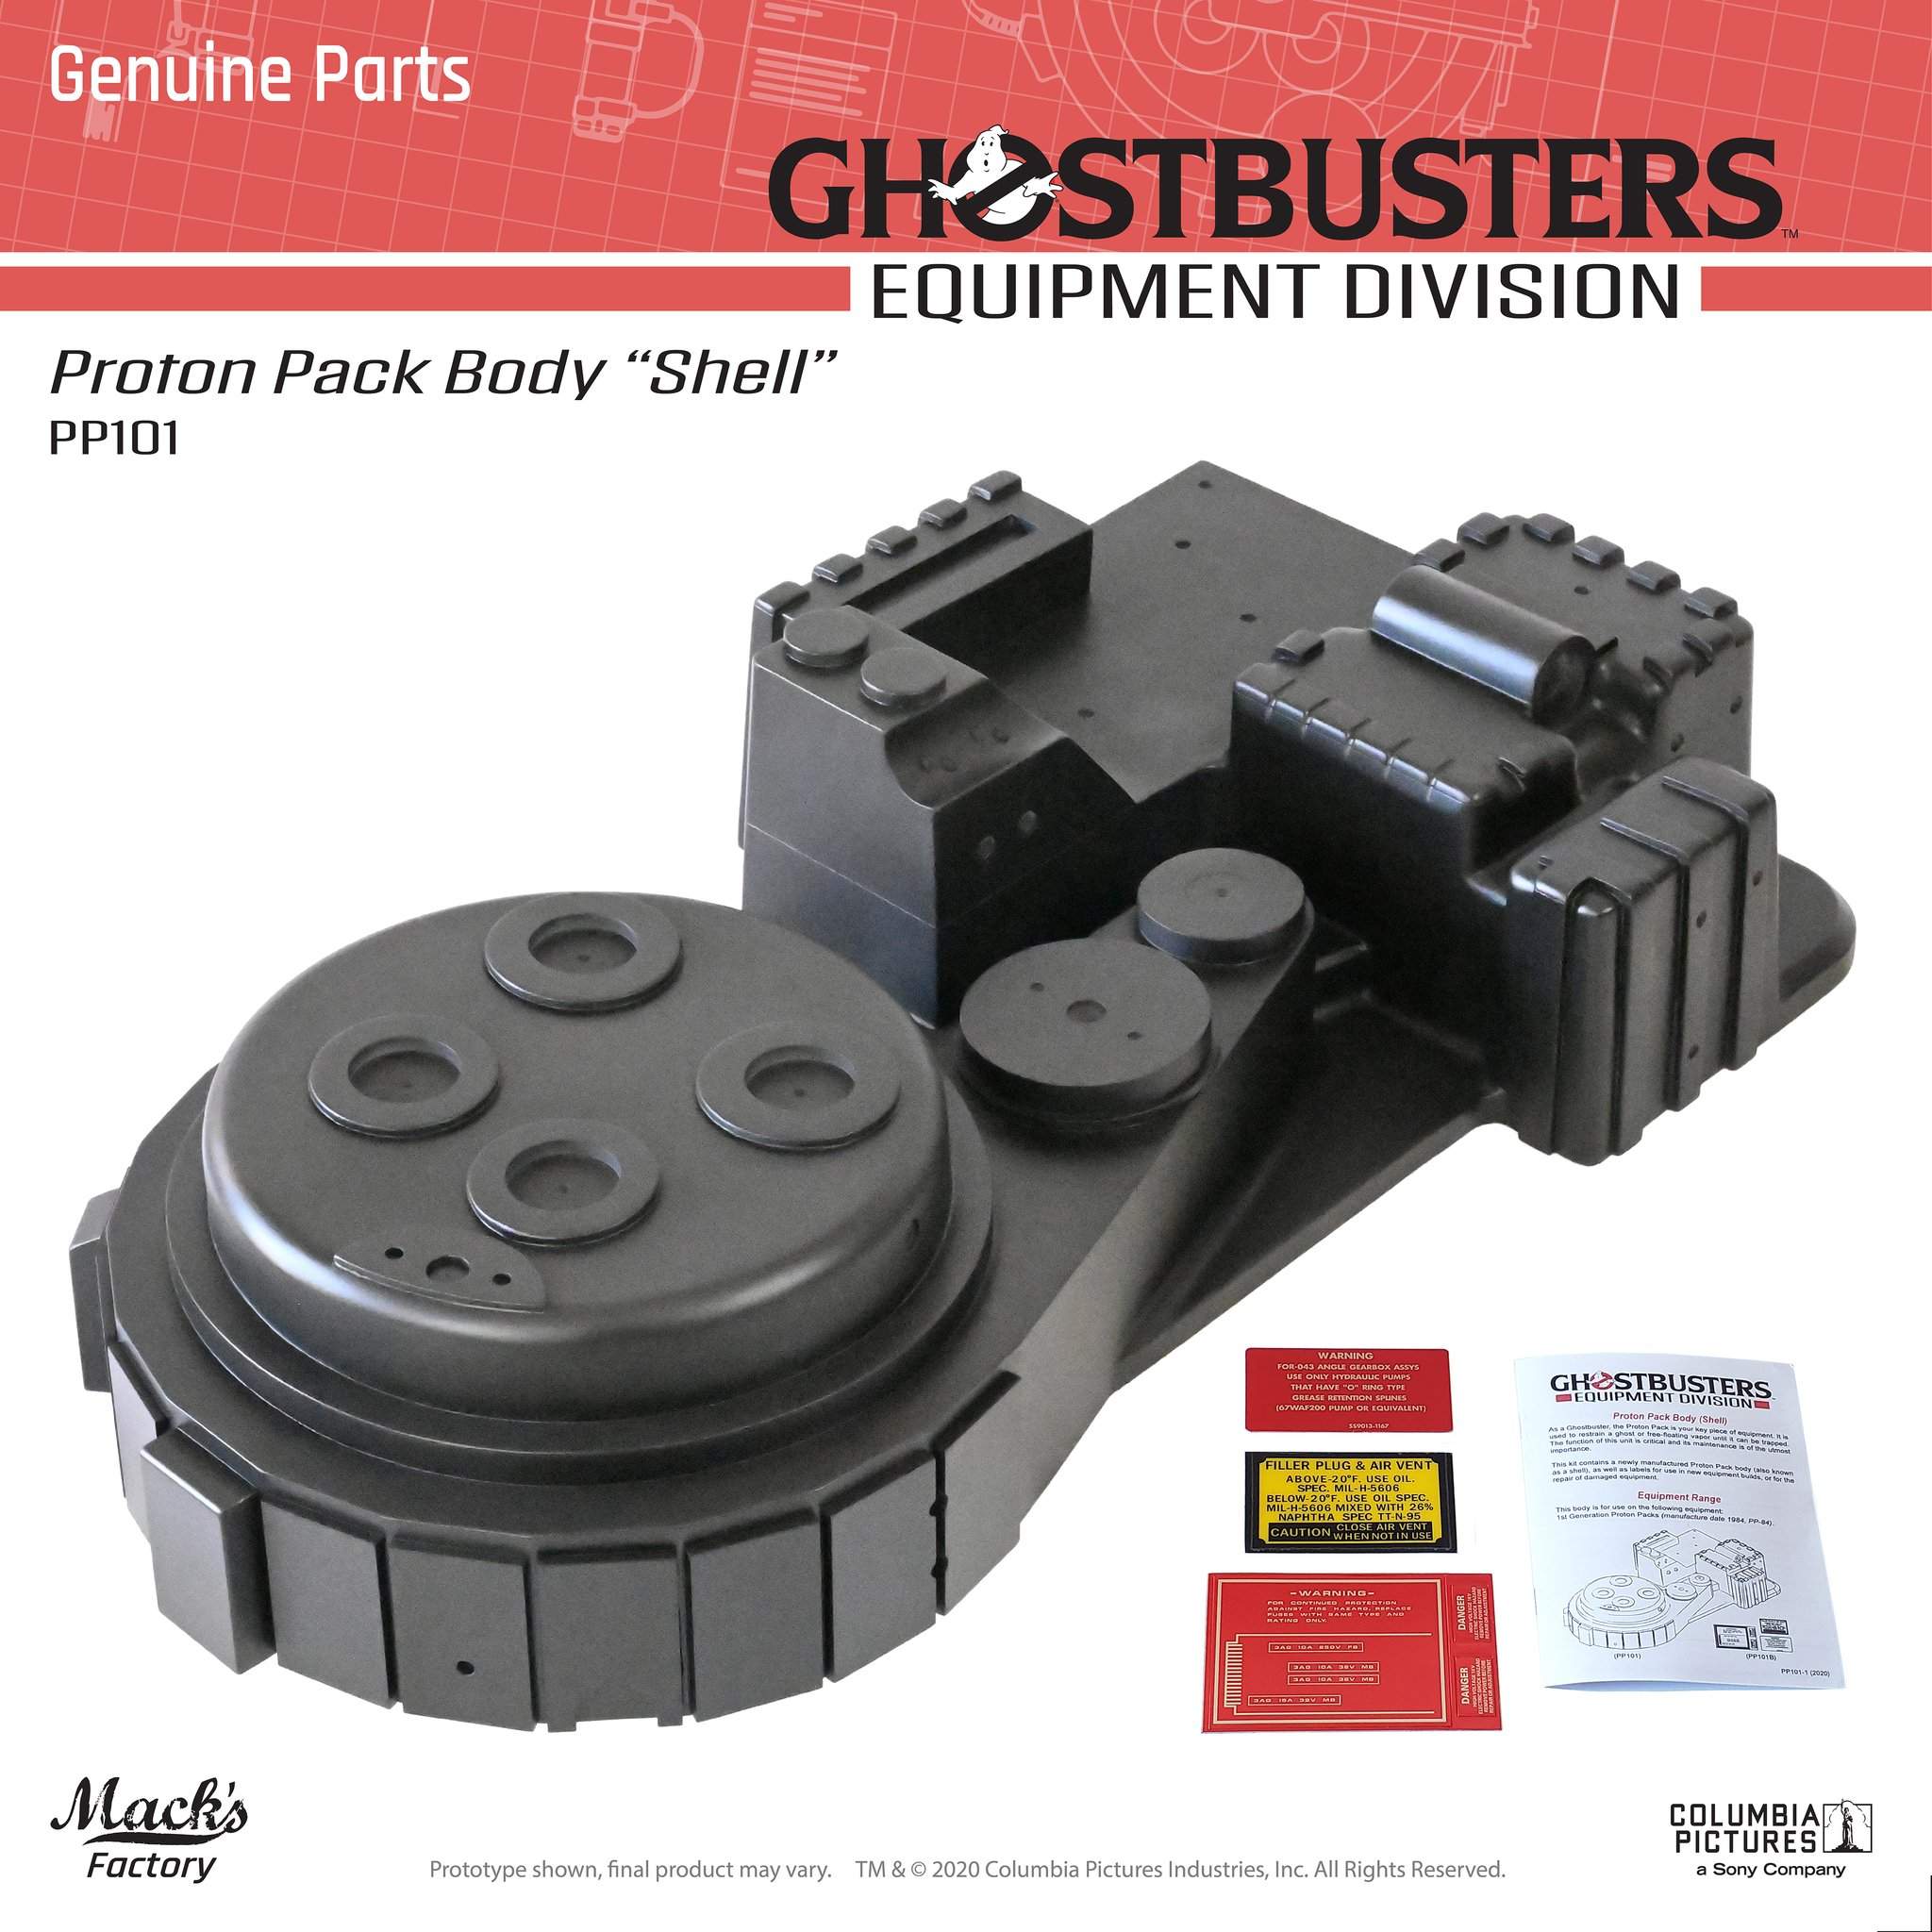 PP101 - Proton Pack